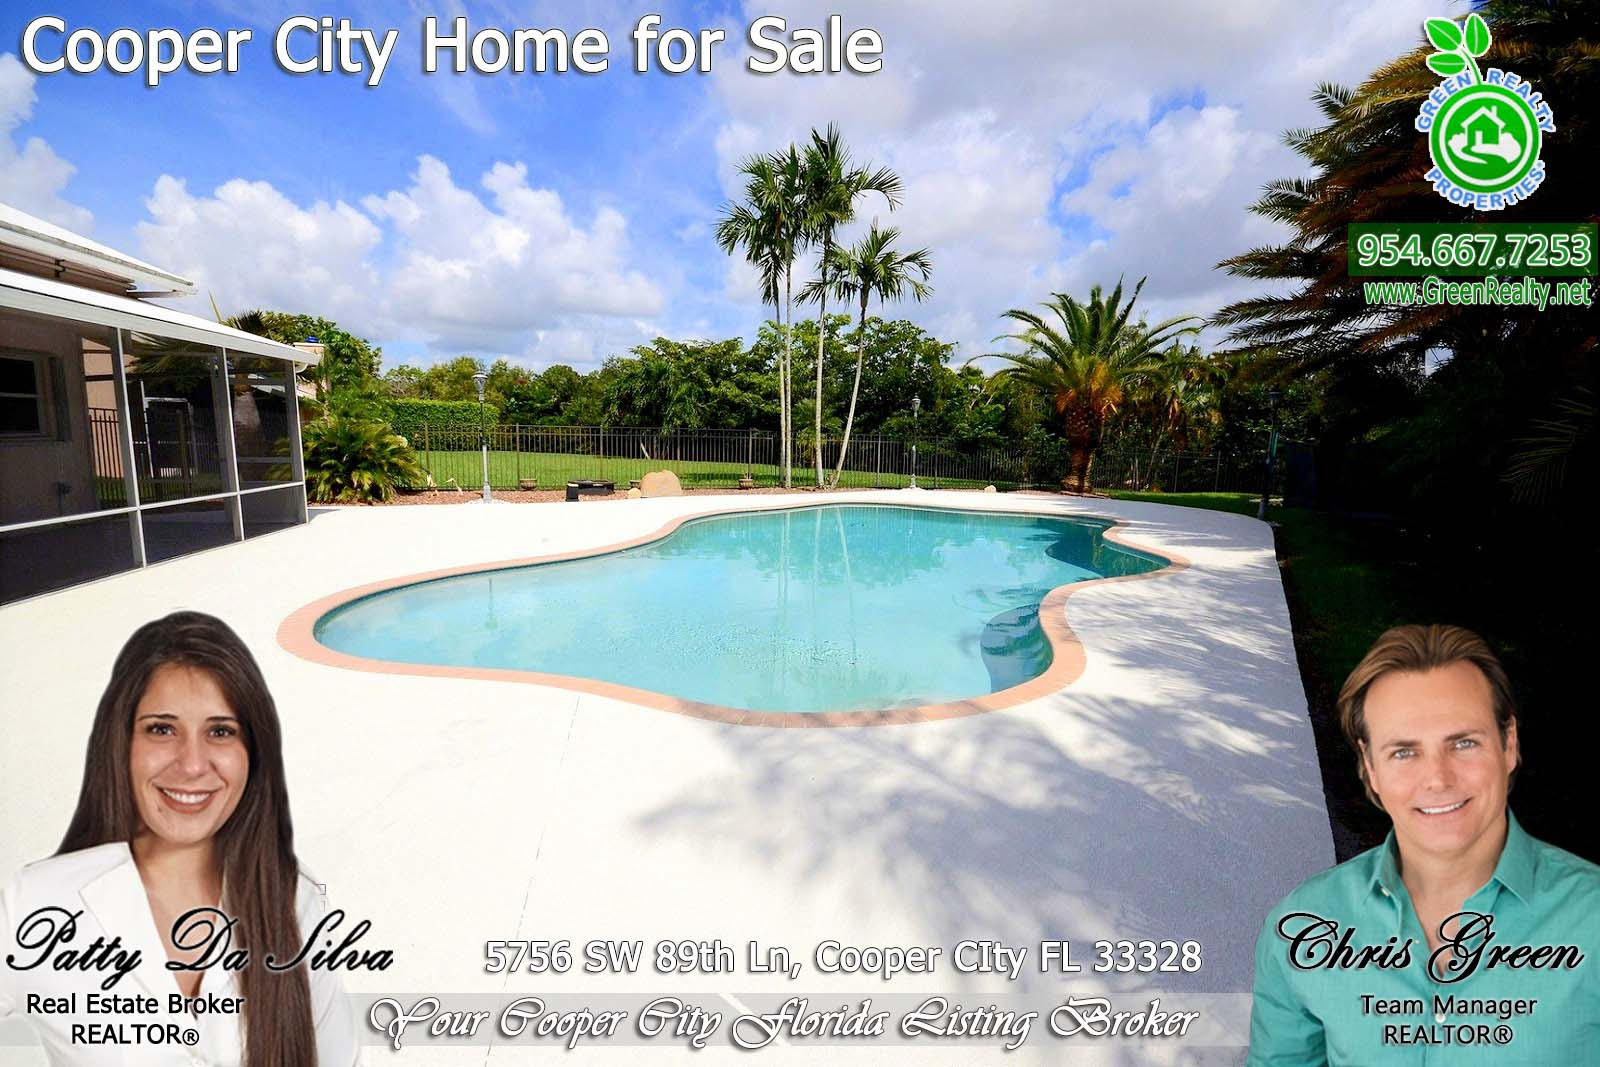 Homes For Sale in Cooper City